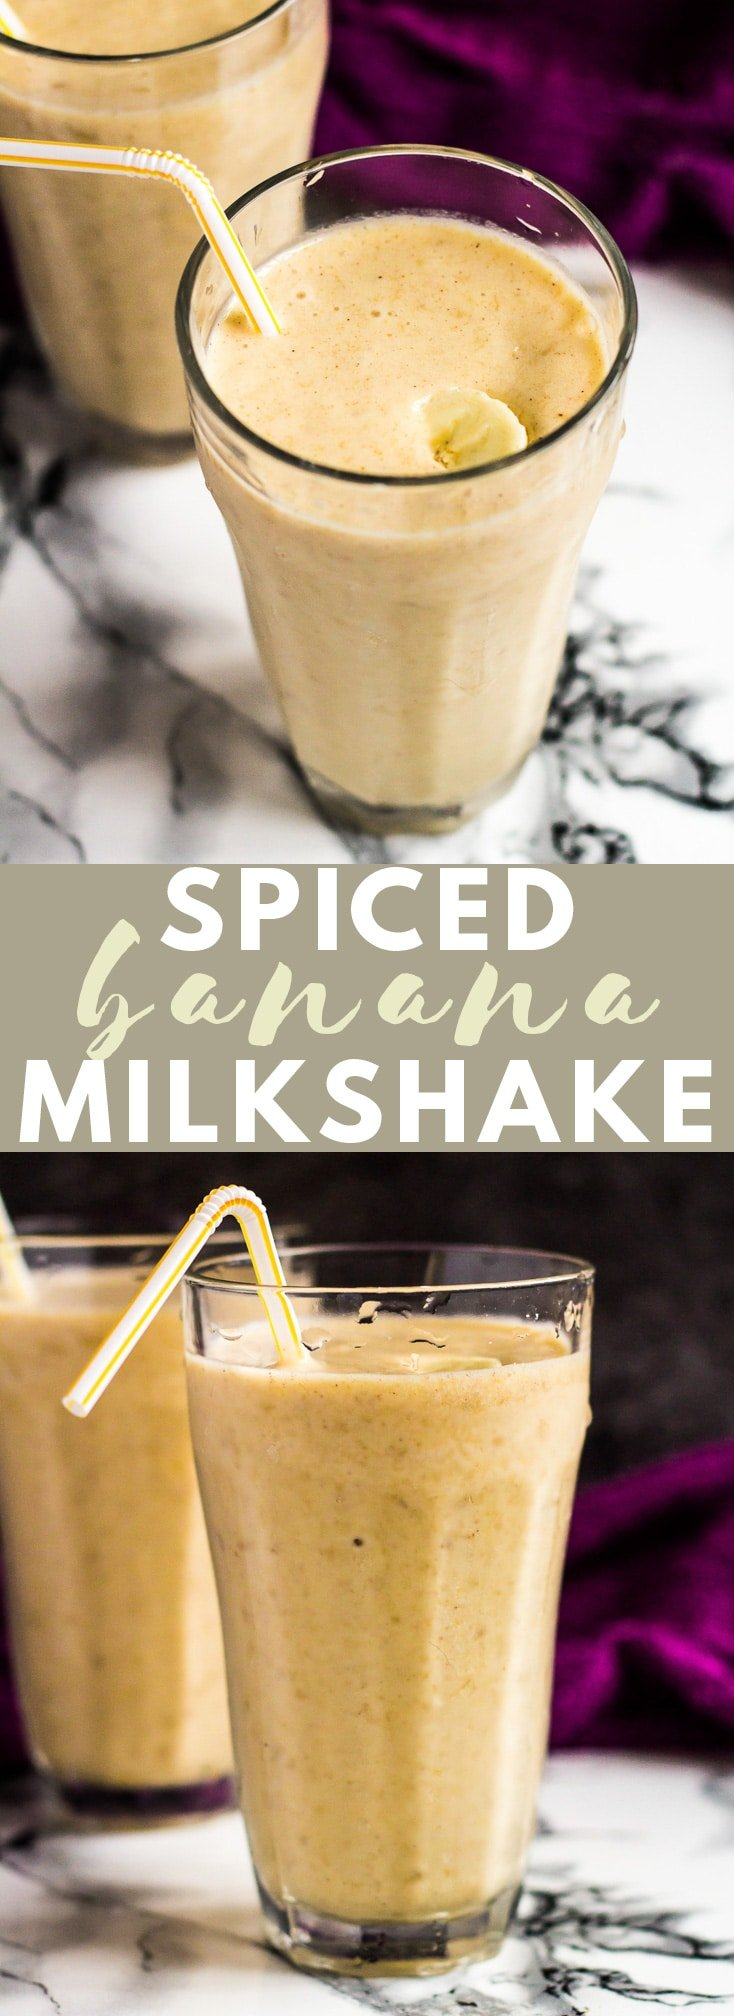 Spiced Banana Milkshake - This deliciously thick banana milkshake is so full of flavour, and is perfectly spiced with a hint of cinnamon and ginger. A perfect, indulgent pick-me-up drink! #bananamilkshake #milkshakerecipes #bananarecipes